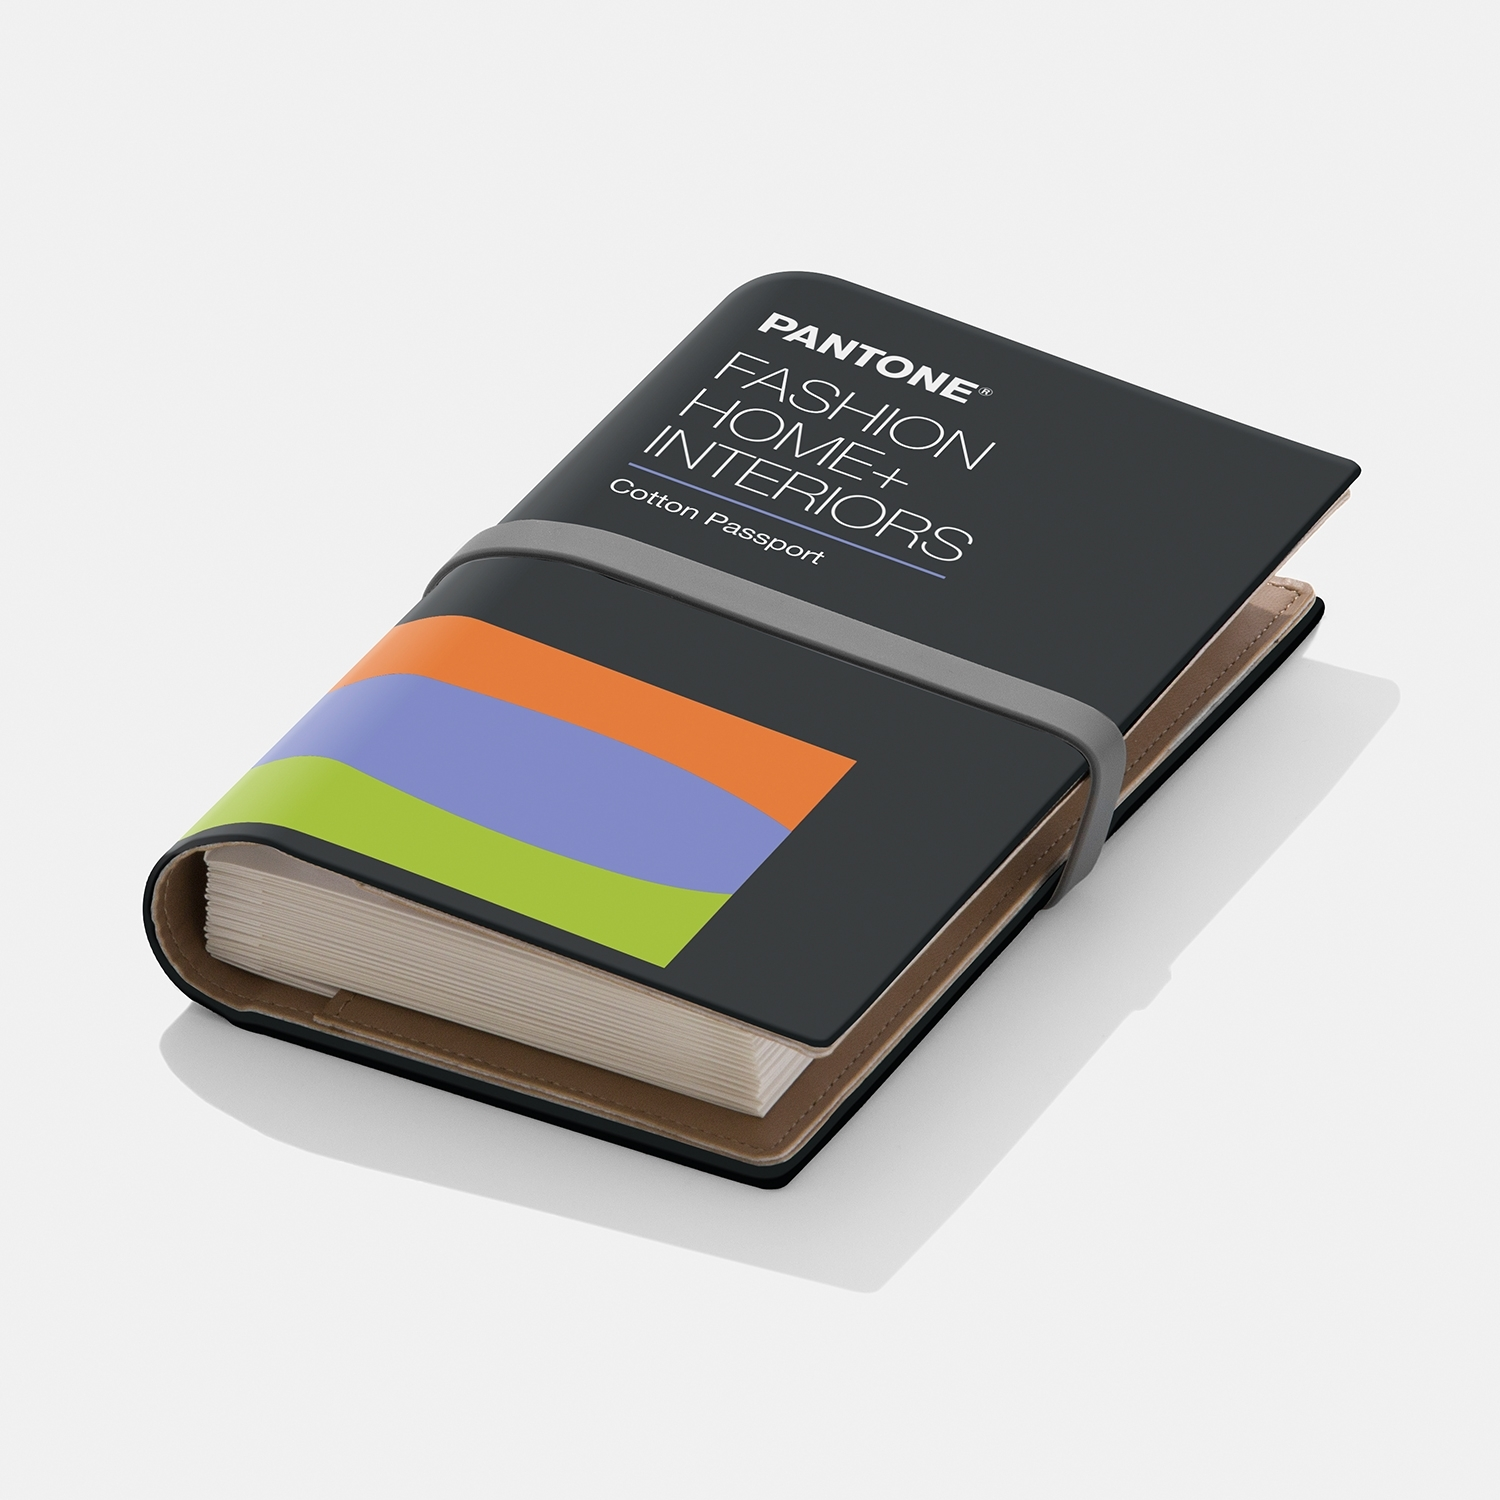 Pantone FHI Cotton Passport 2019 edition Take your creativity to new places with Pantone Colors on cotton, to go - View 3